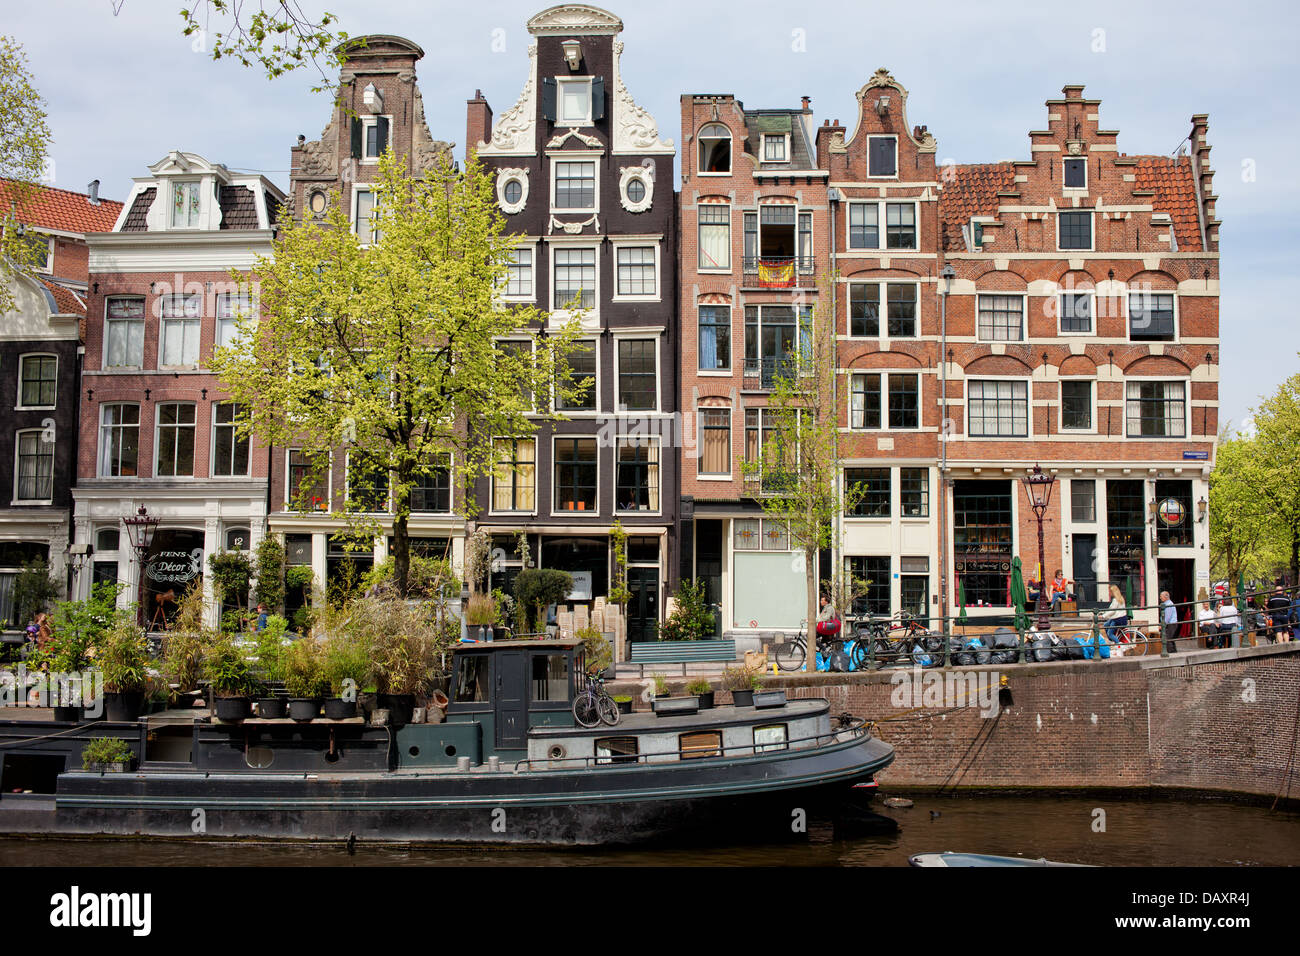 Houses, Dutch style apartment buildings along Prinsengracht canal in the city of Amsterdam, Netherlands. - Stock Image